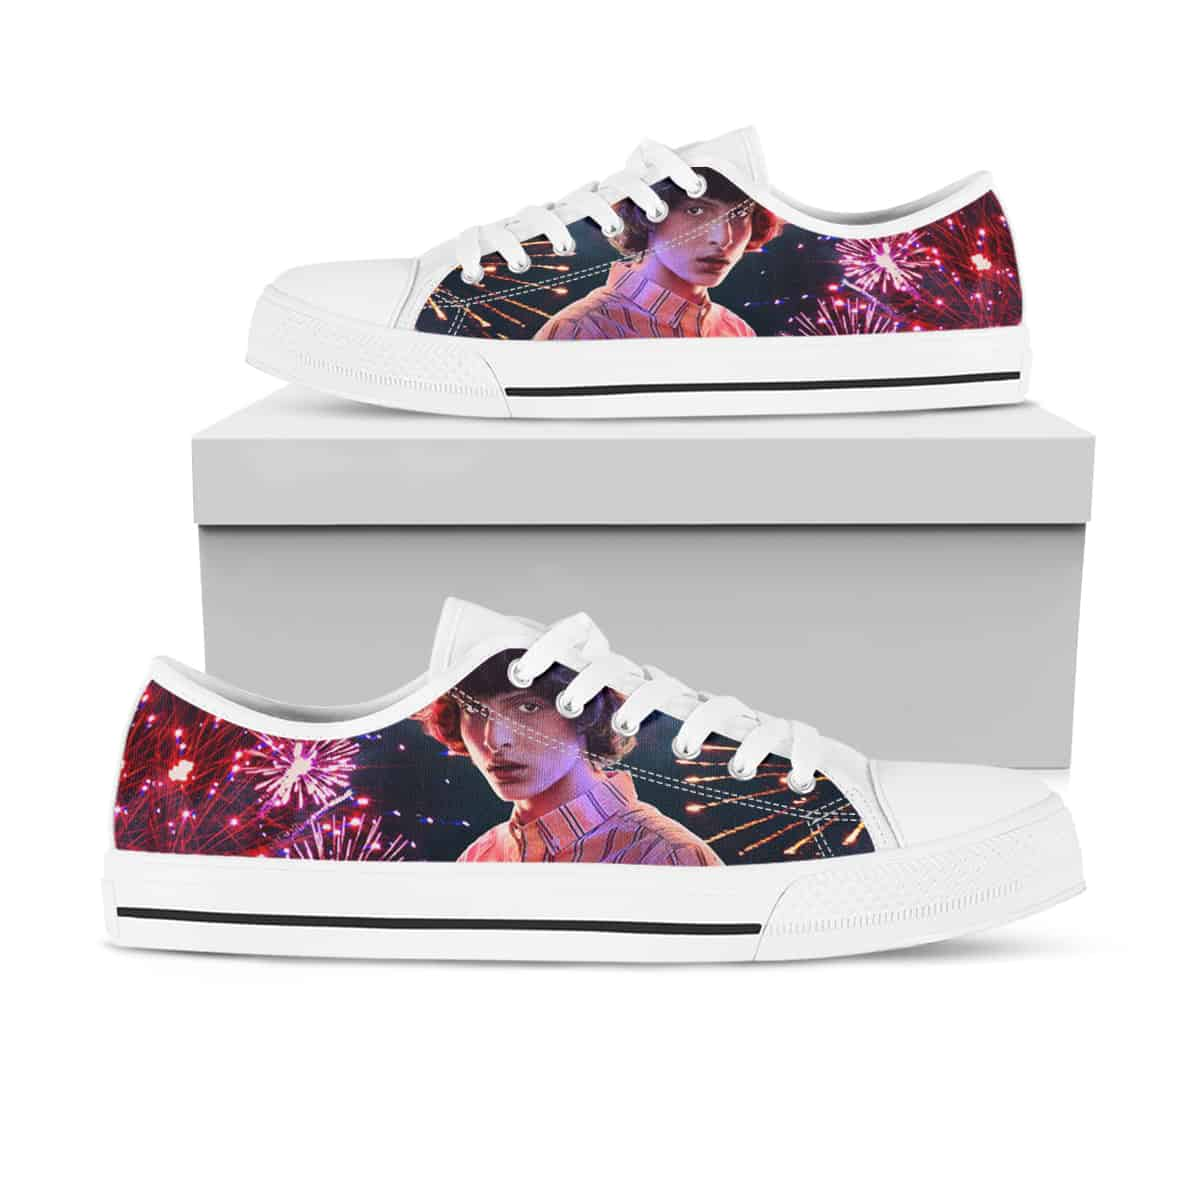 Stranger Things Ha08 Low Top Shoes